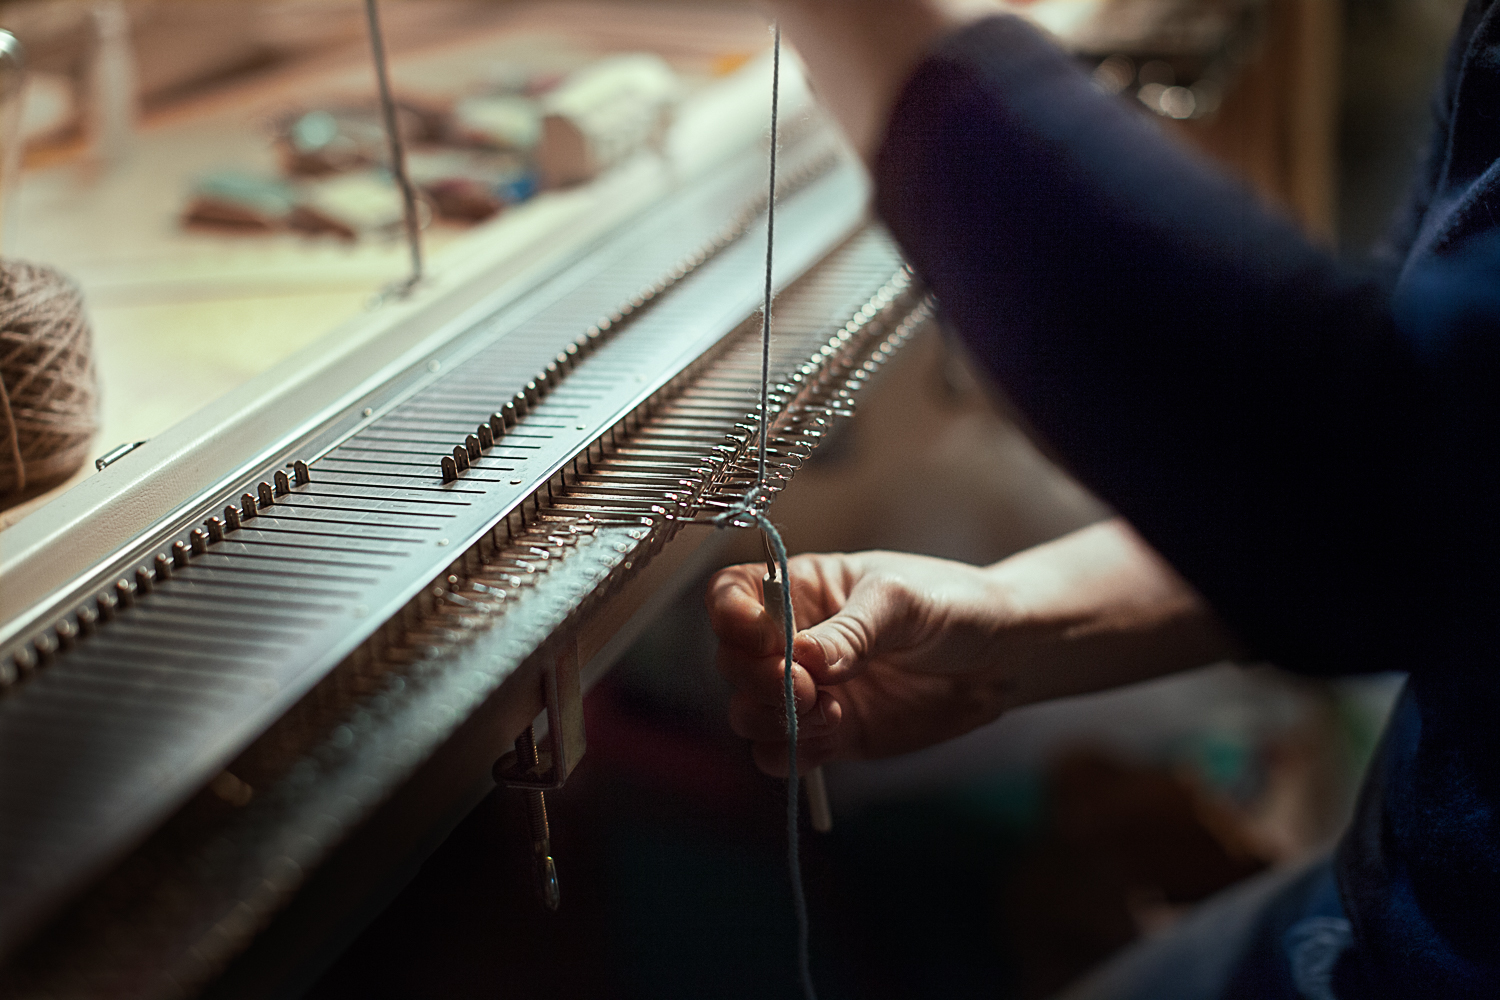 image of hands weaving on a loom